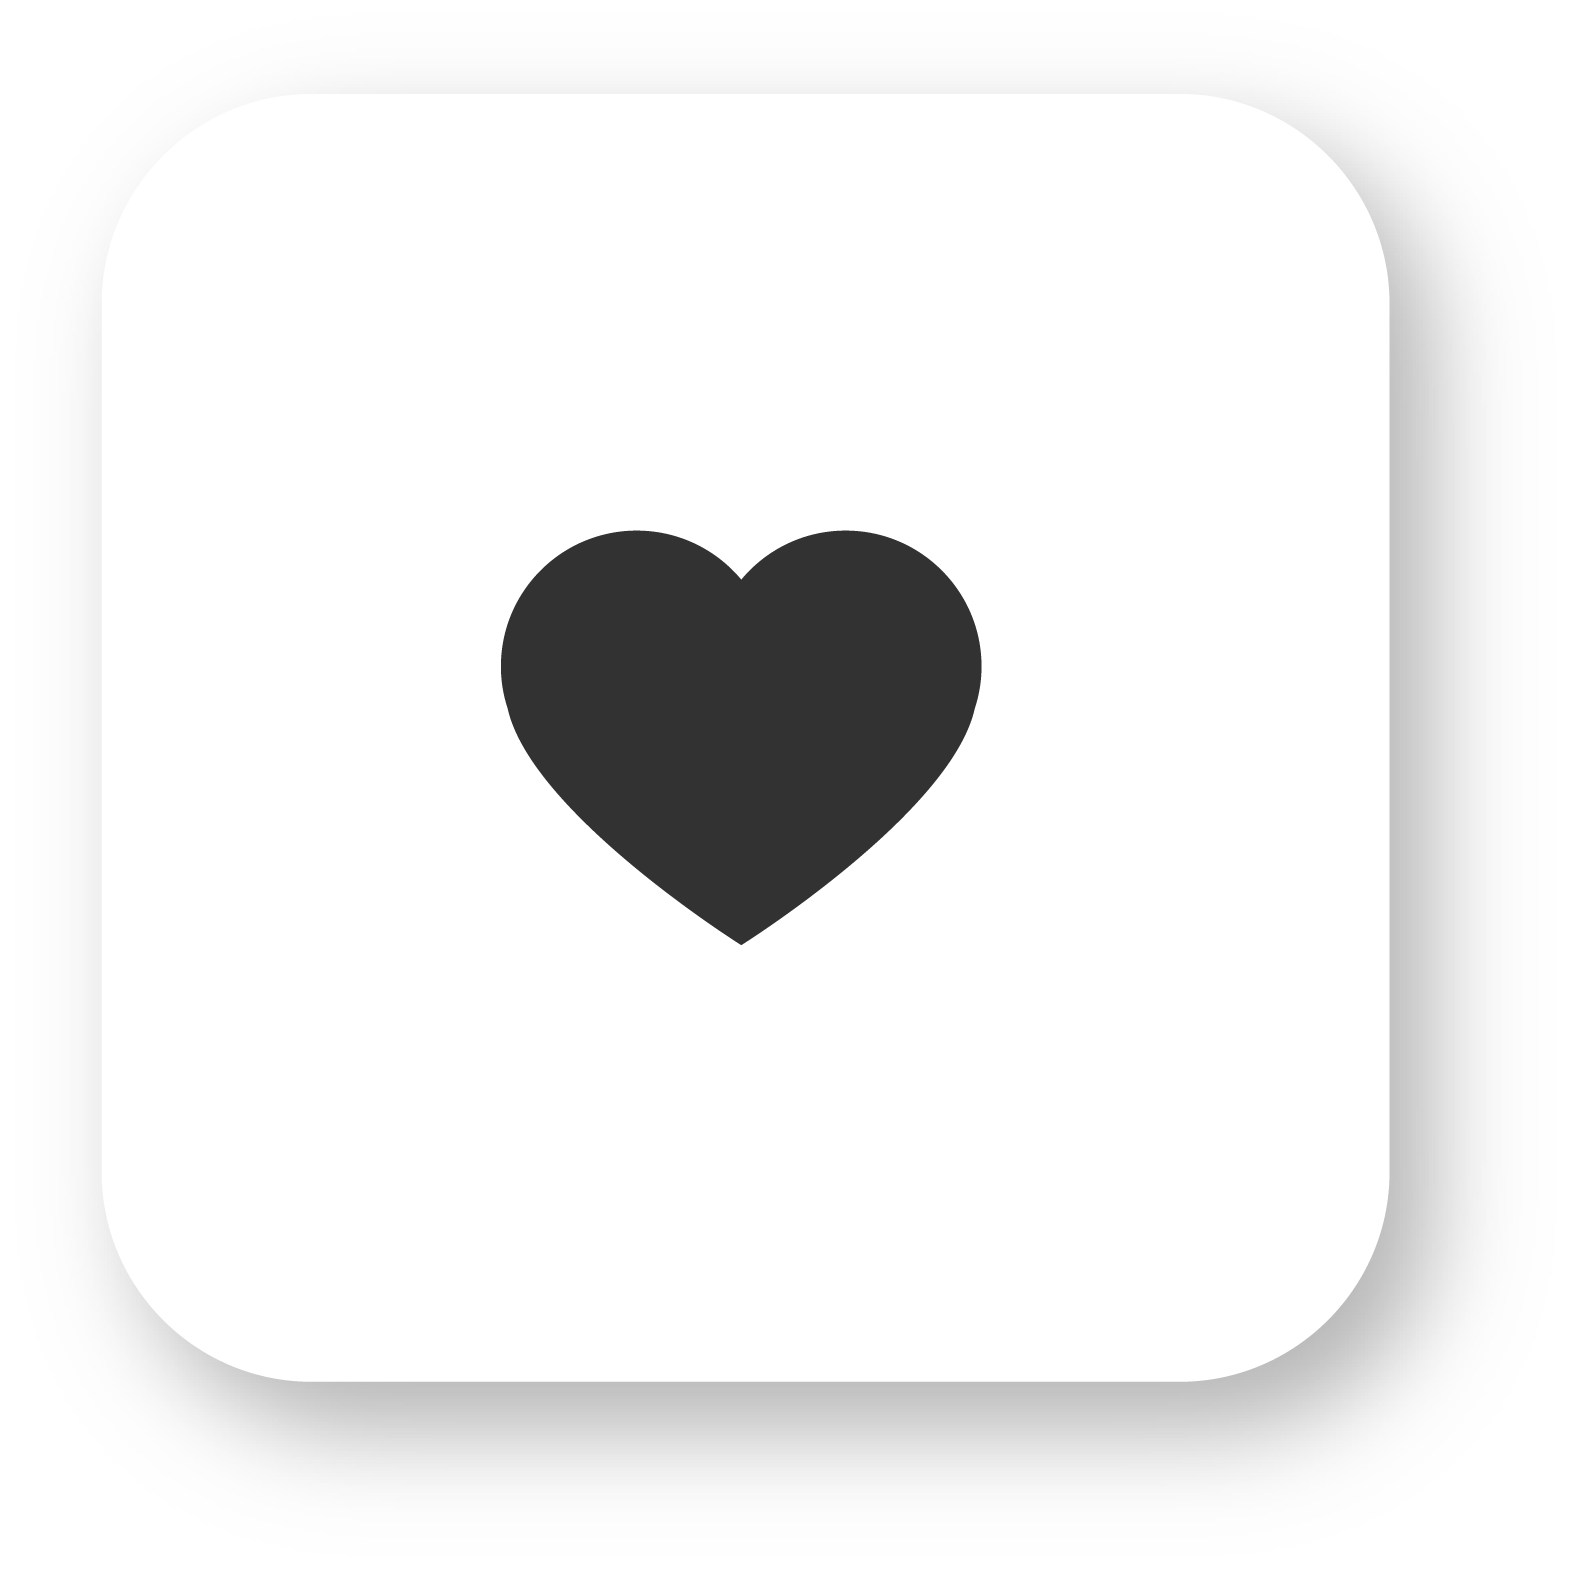 White instagram png. Heart images a picture